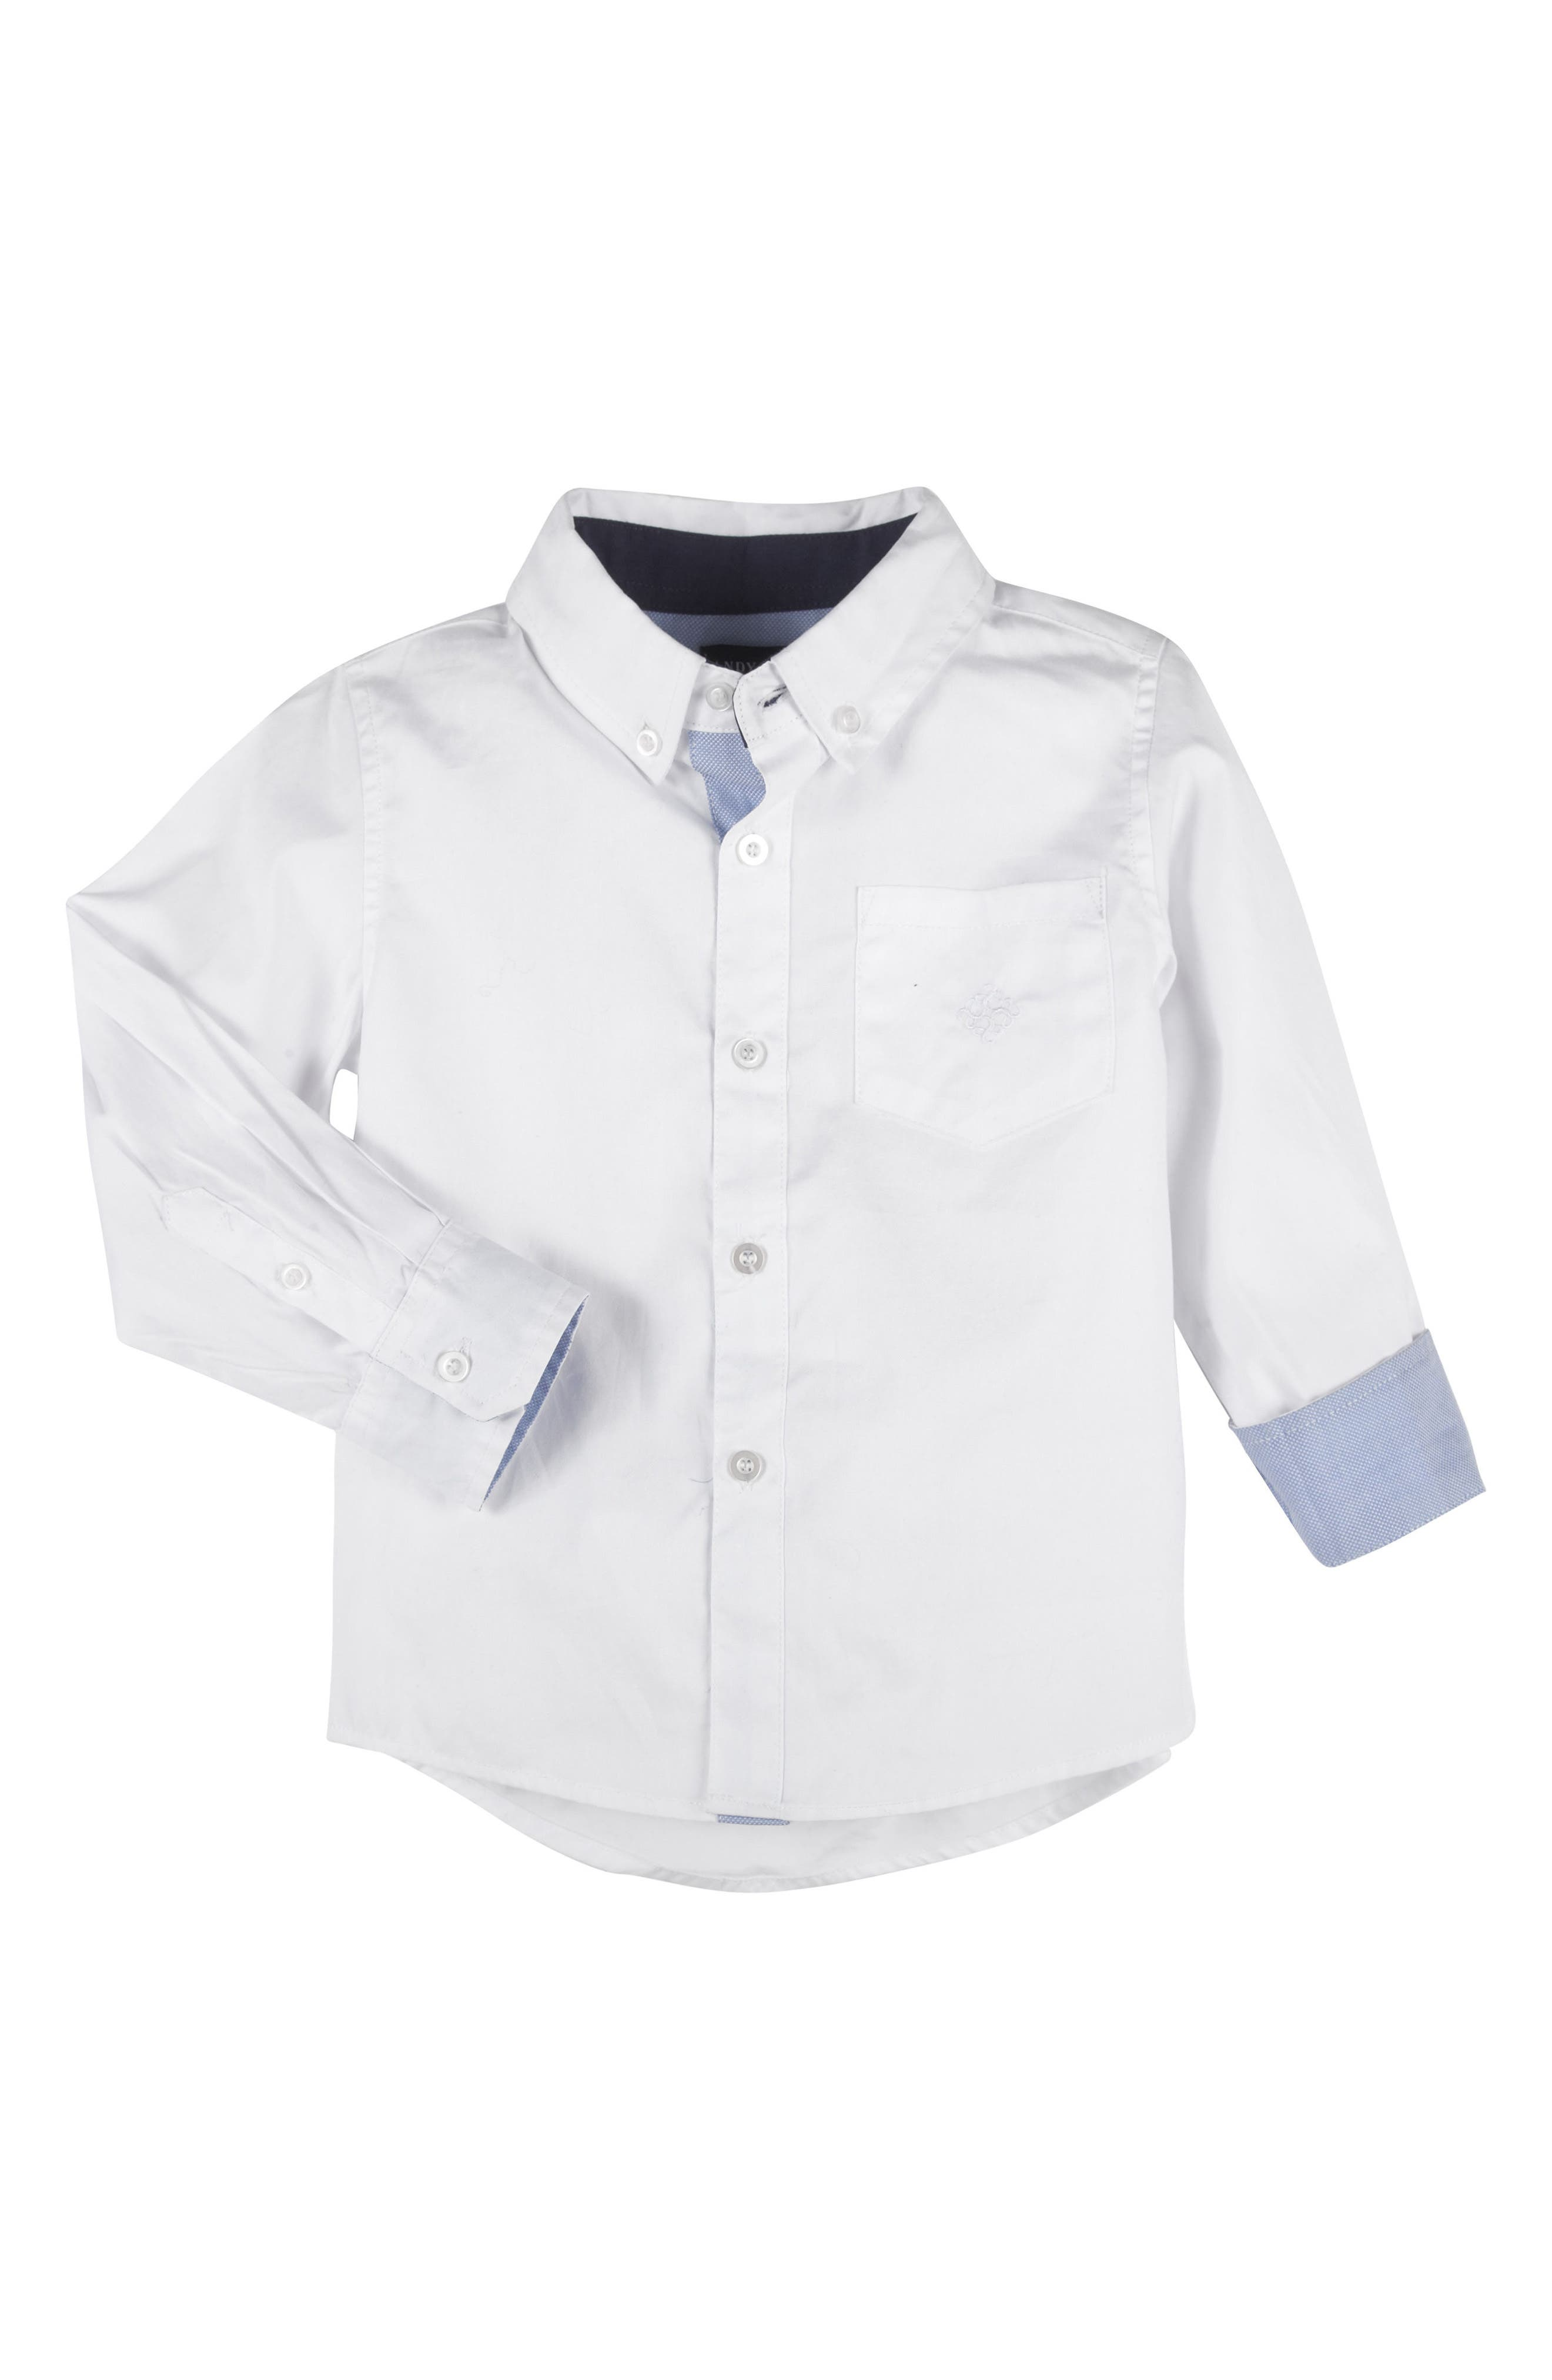 Oxford Shirt,                             Main thumbnail 1, color,                             101